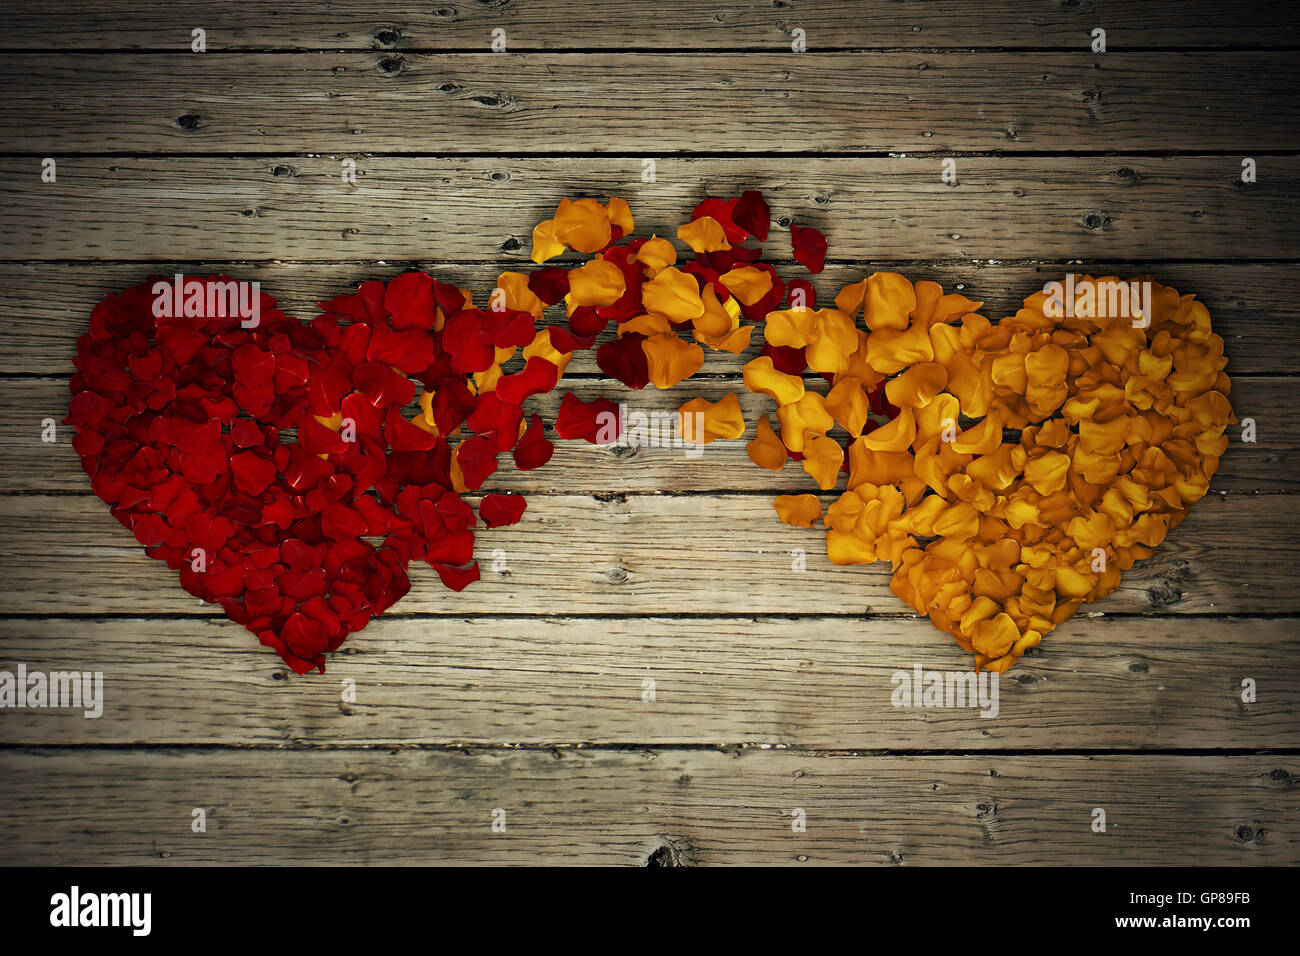 Two rose petal hearts connection on wood background. Romantic relationship concept. Attachment and love symbol, - Stock Image